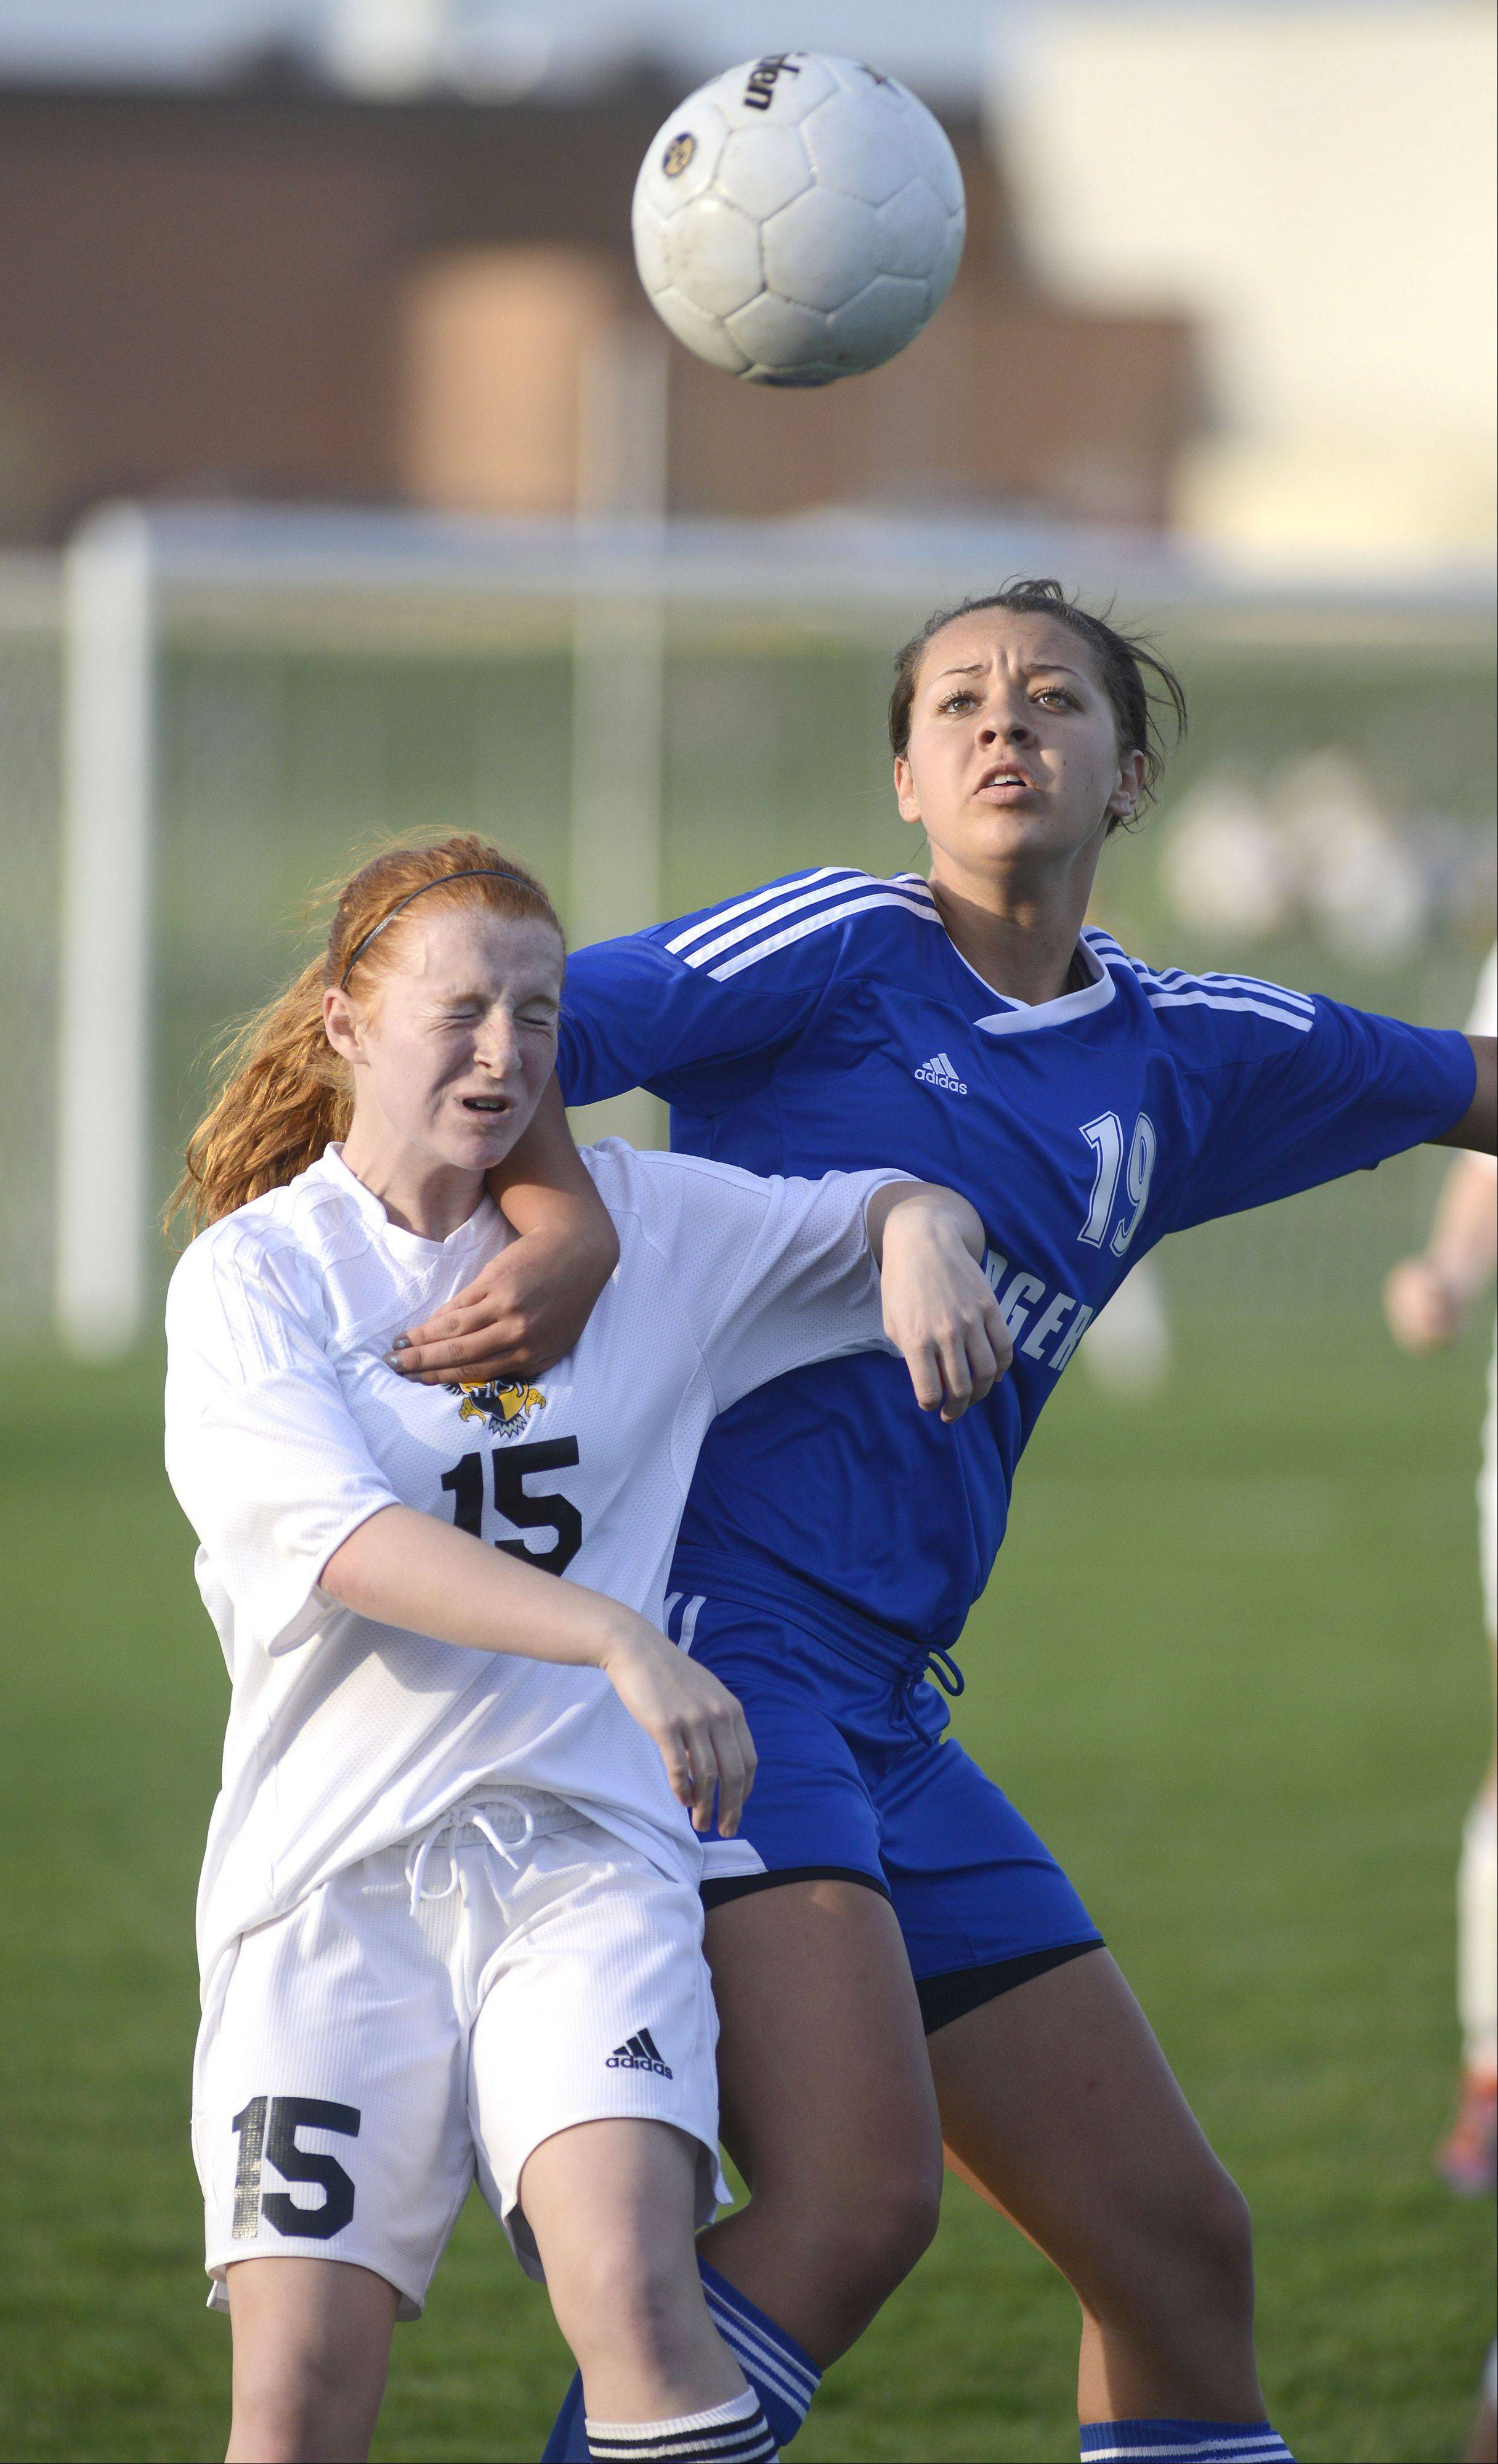 Jacobs' Allie Gold is pushed off by Dundee-Crown's Ashley Raby as they battle for the ball in the first half on Tuesday.